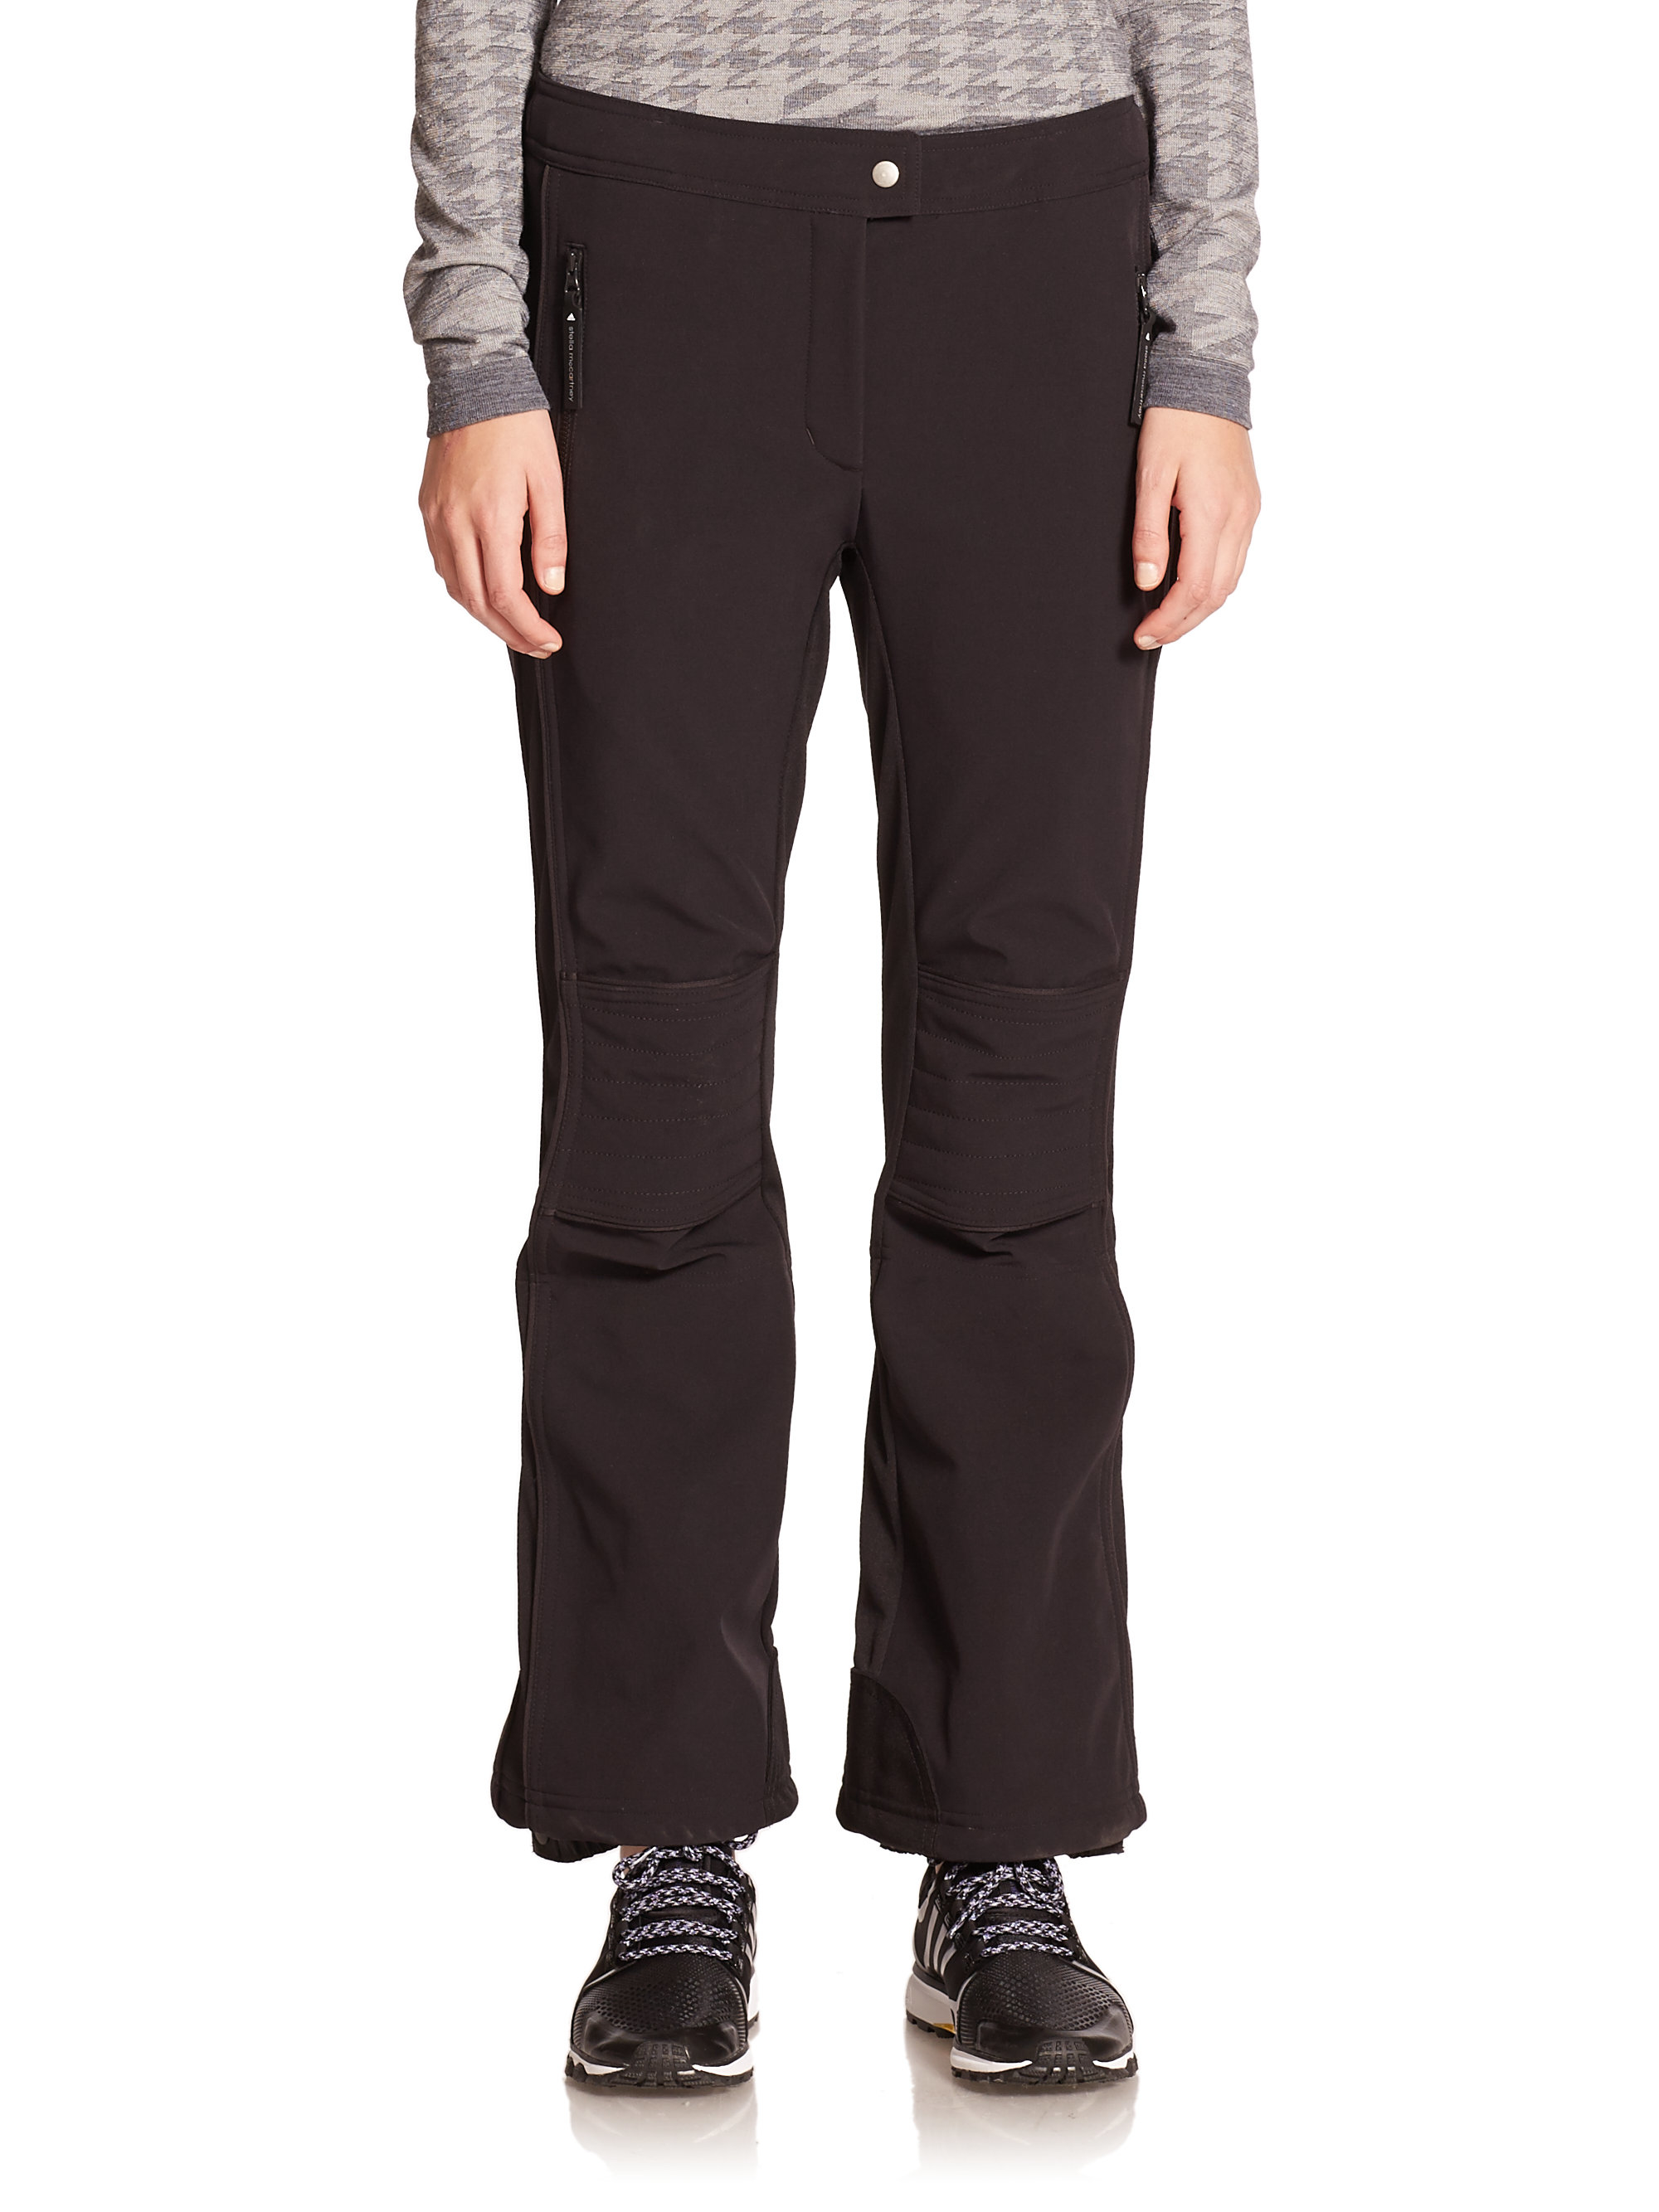 adidas-by-stella-mccartney-black-salopettes-ski-pants-product-3-064876033-normal